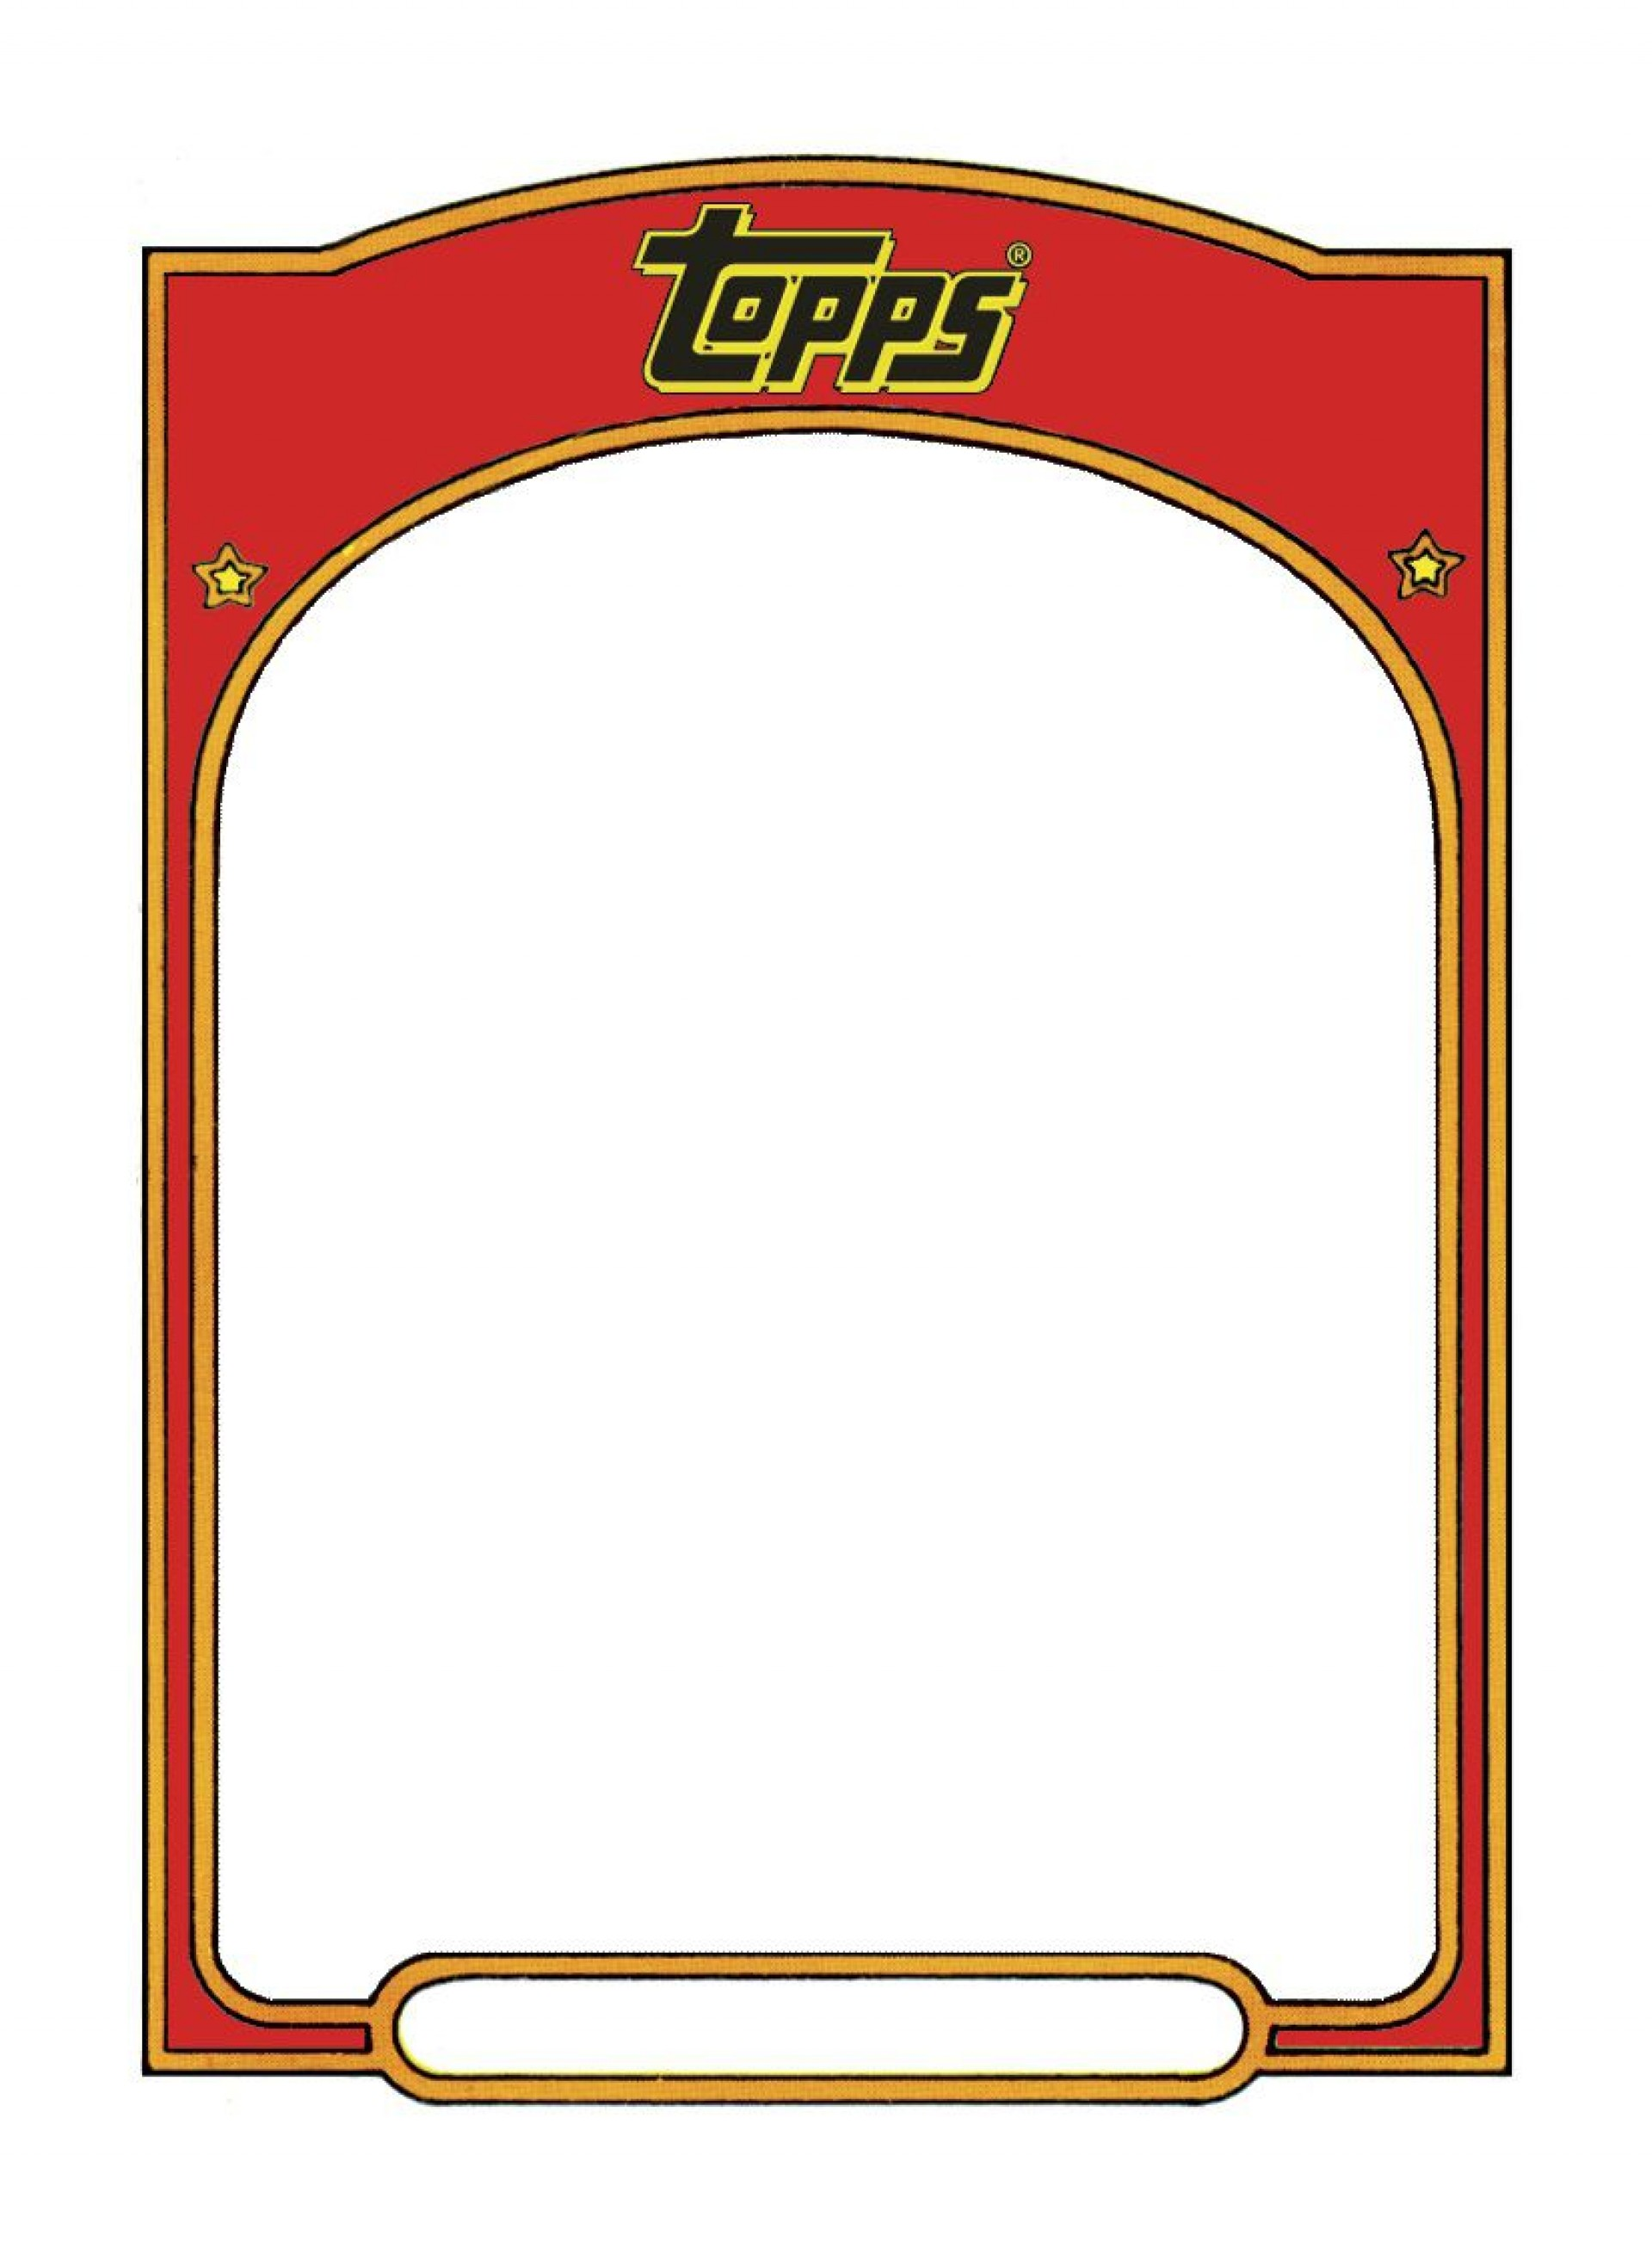 004 Staggering Baseball Card Template Photoshop Sample  Topp Free1920